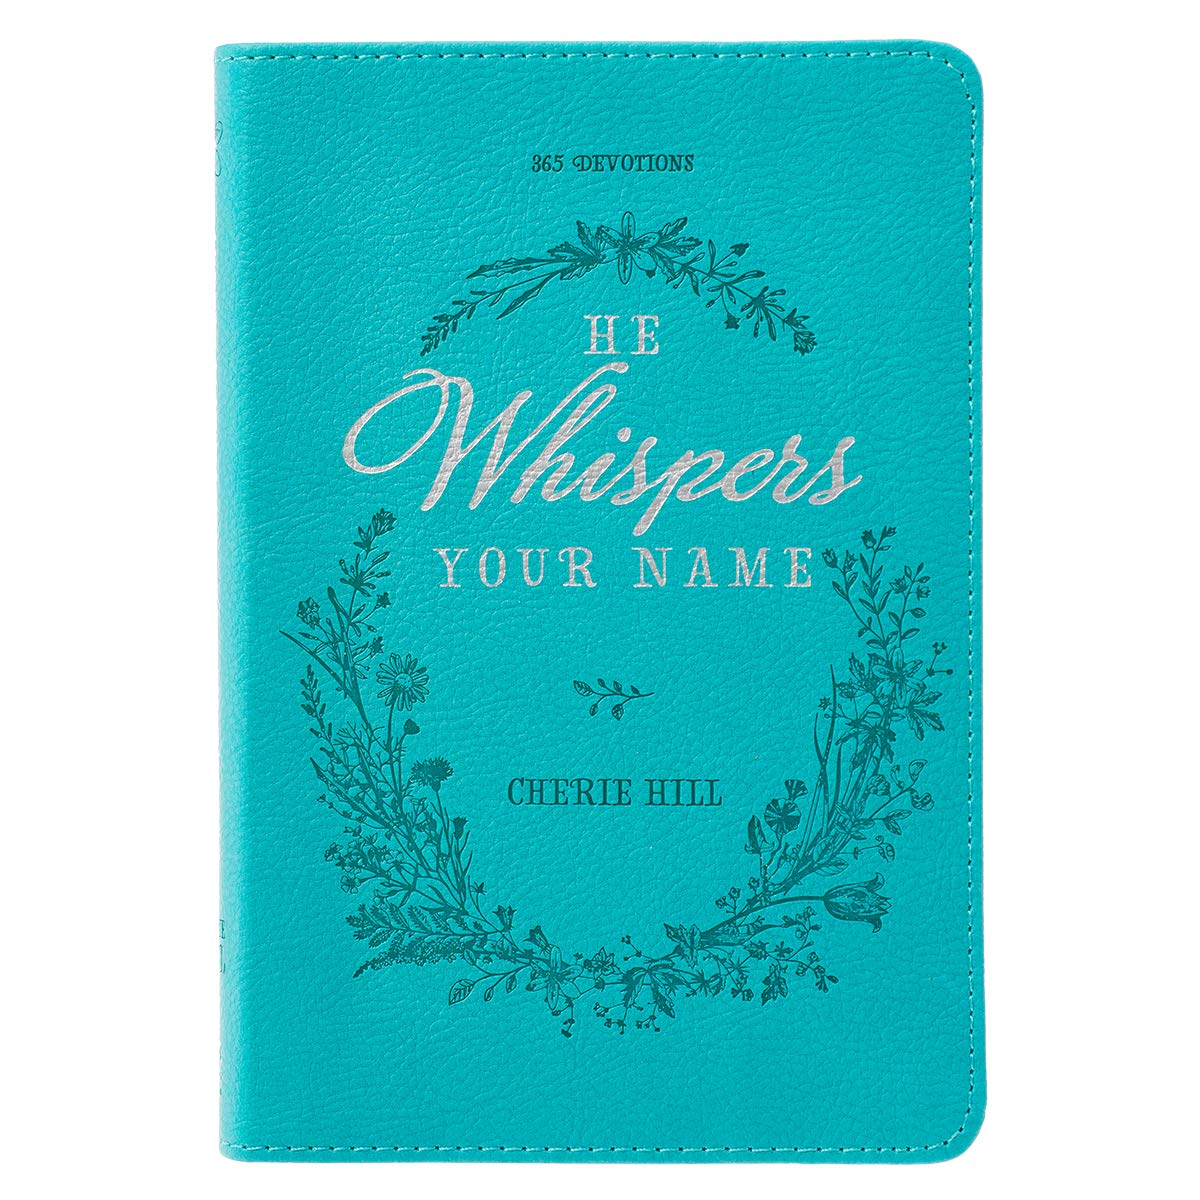 He Whispers Your Name | 365 Devotions for Women | Hope and Comfort to Strengthen Your Walk of Faith | Teal Faux Leather Devotional Gift Book w/Ribbon Marker